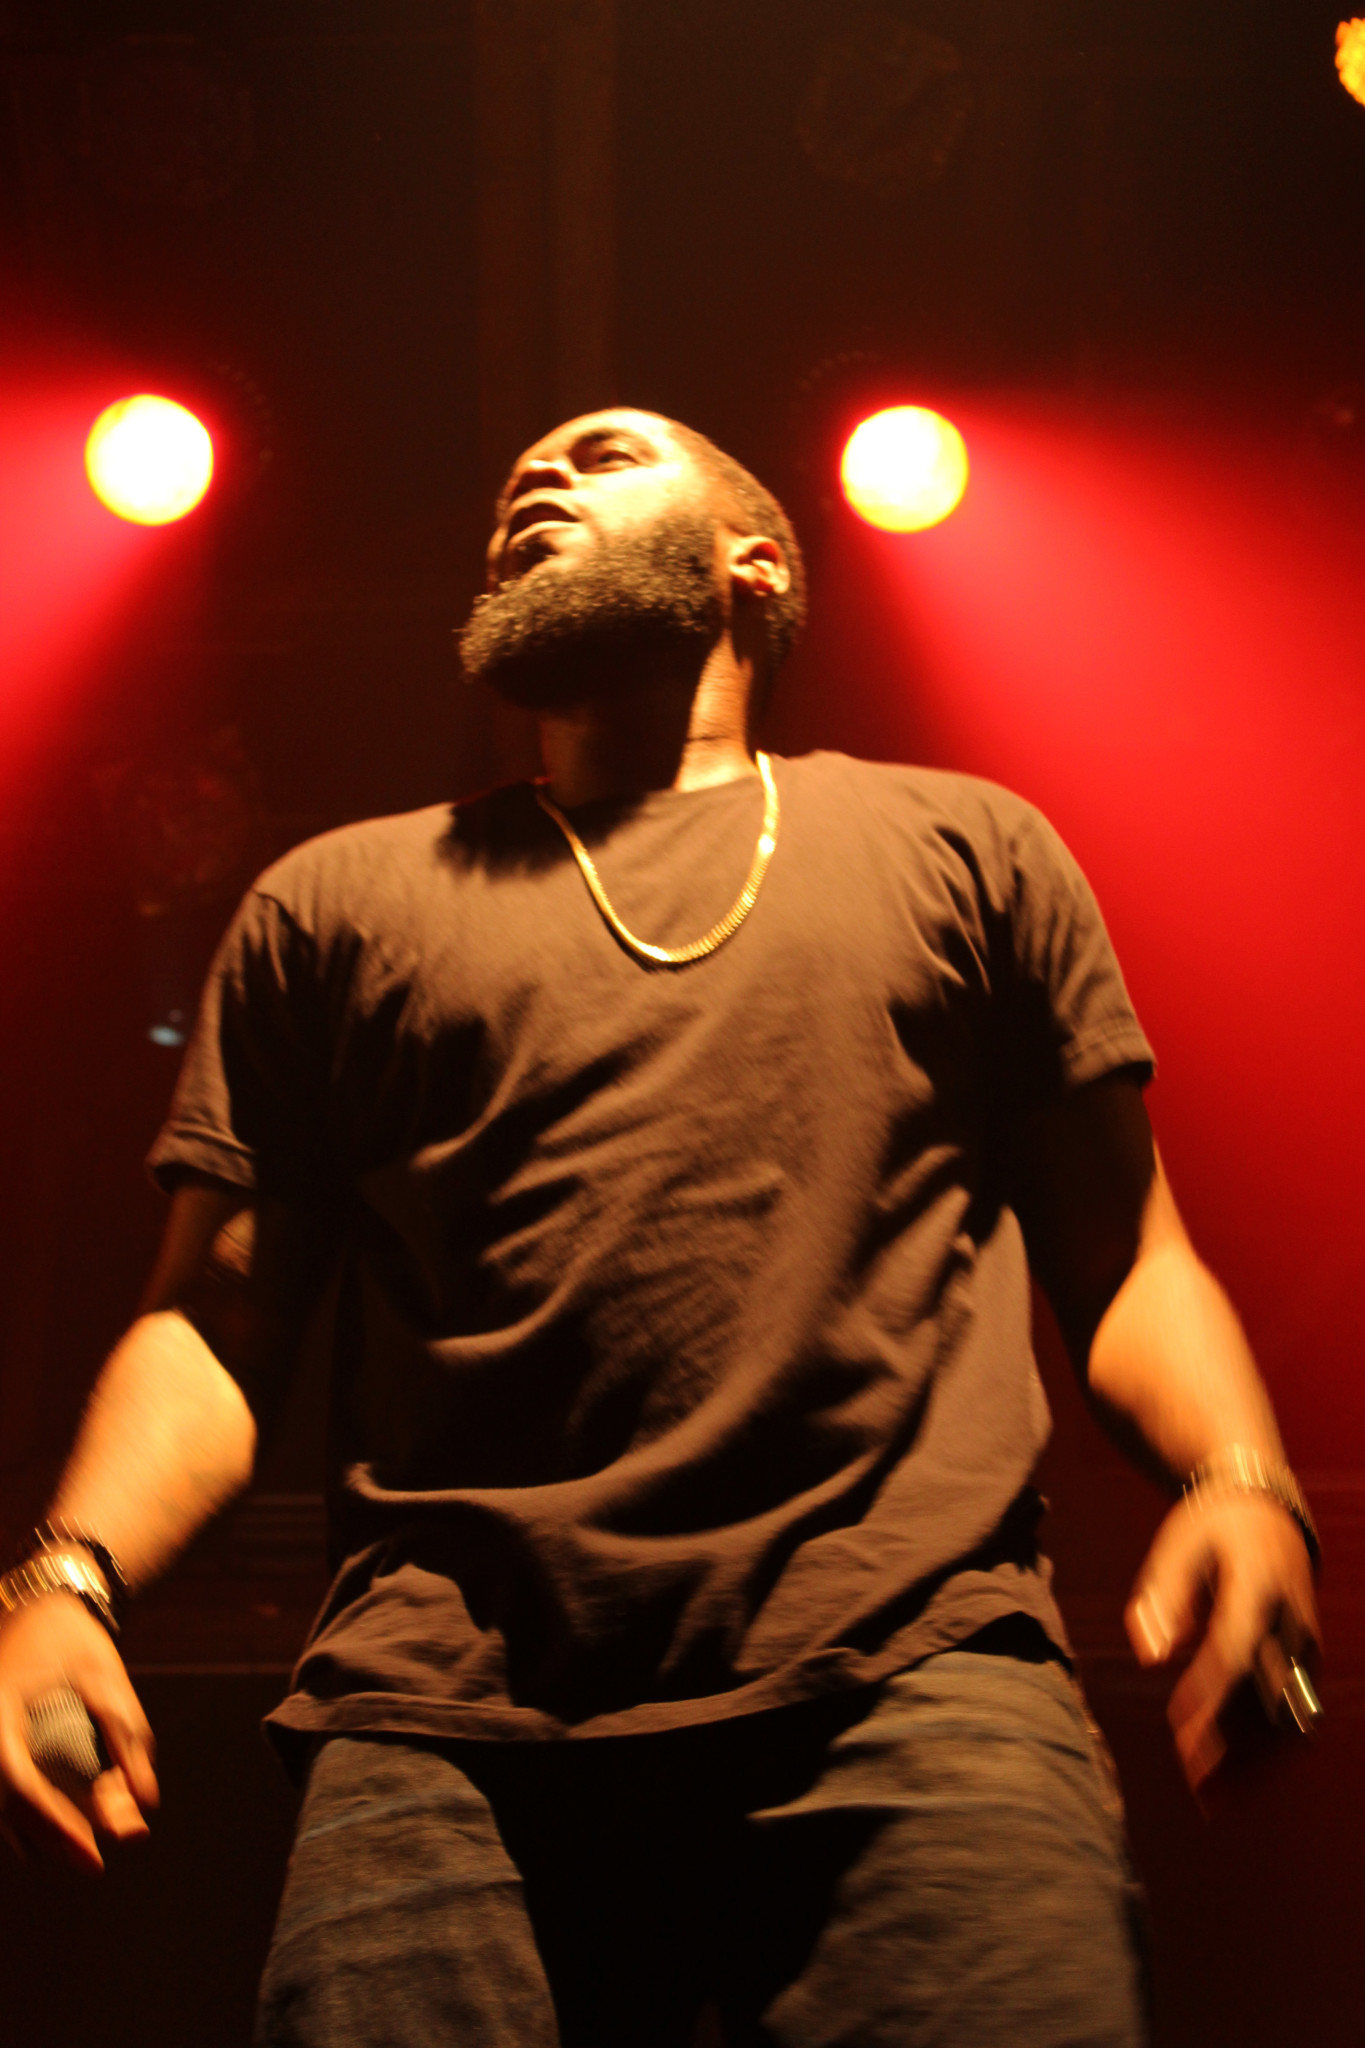 Concert Review: Big K.R.I.T.'s Kritically Acclaimed Tour at Warehouse Live